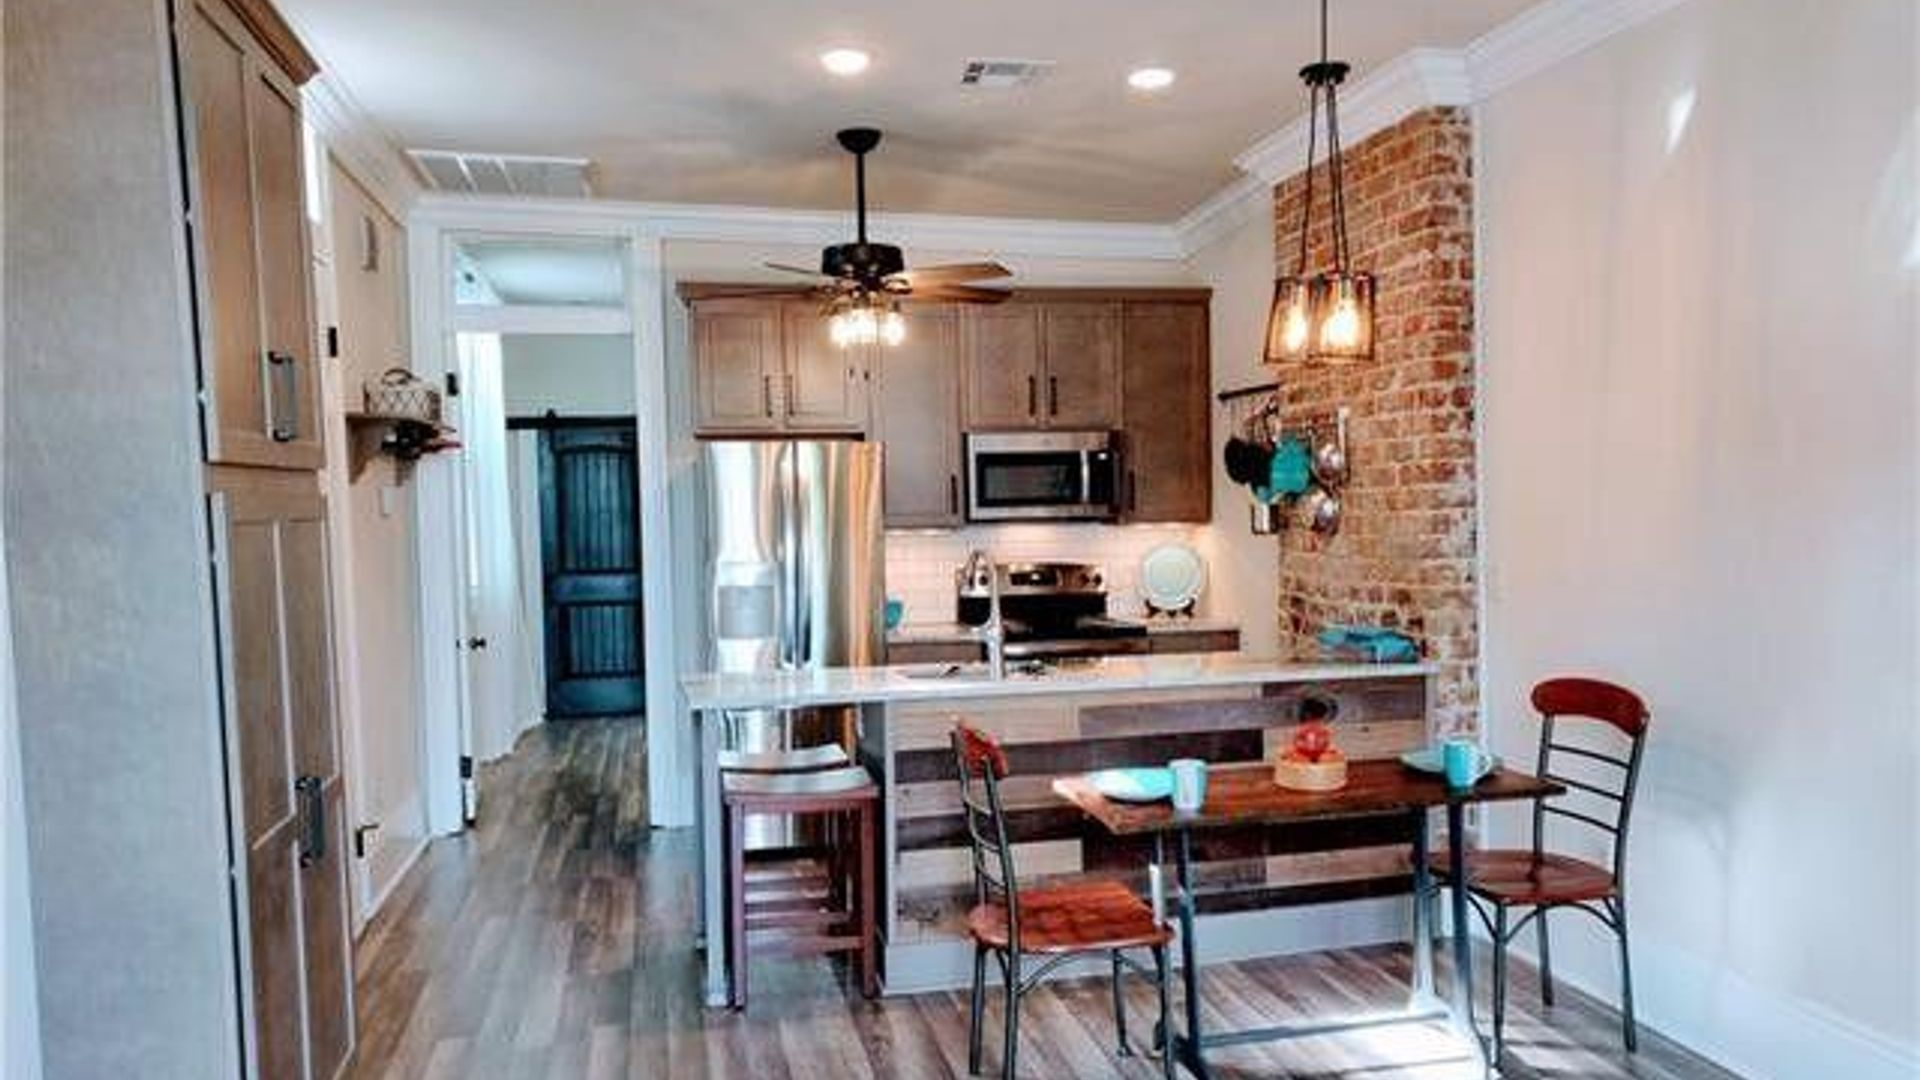 1-bed house at 4612 Magnolia Street, New Orleans, LA 70115 ...